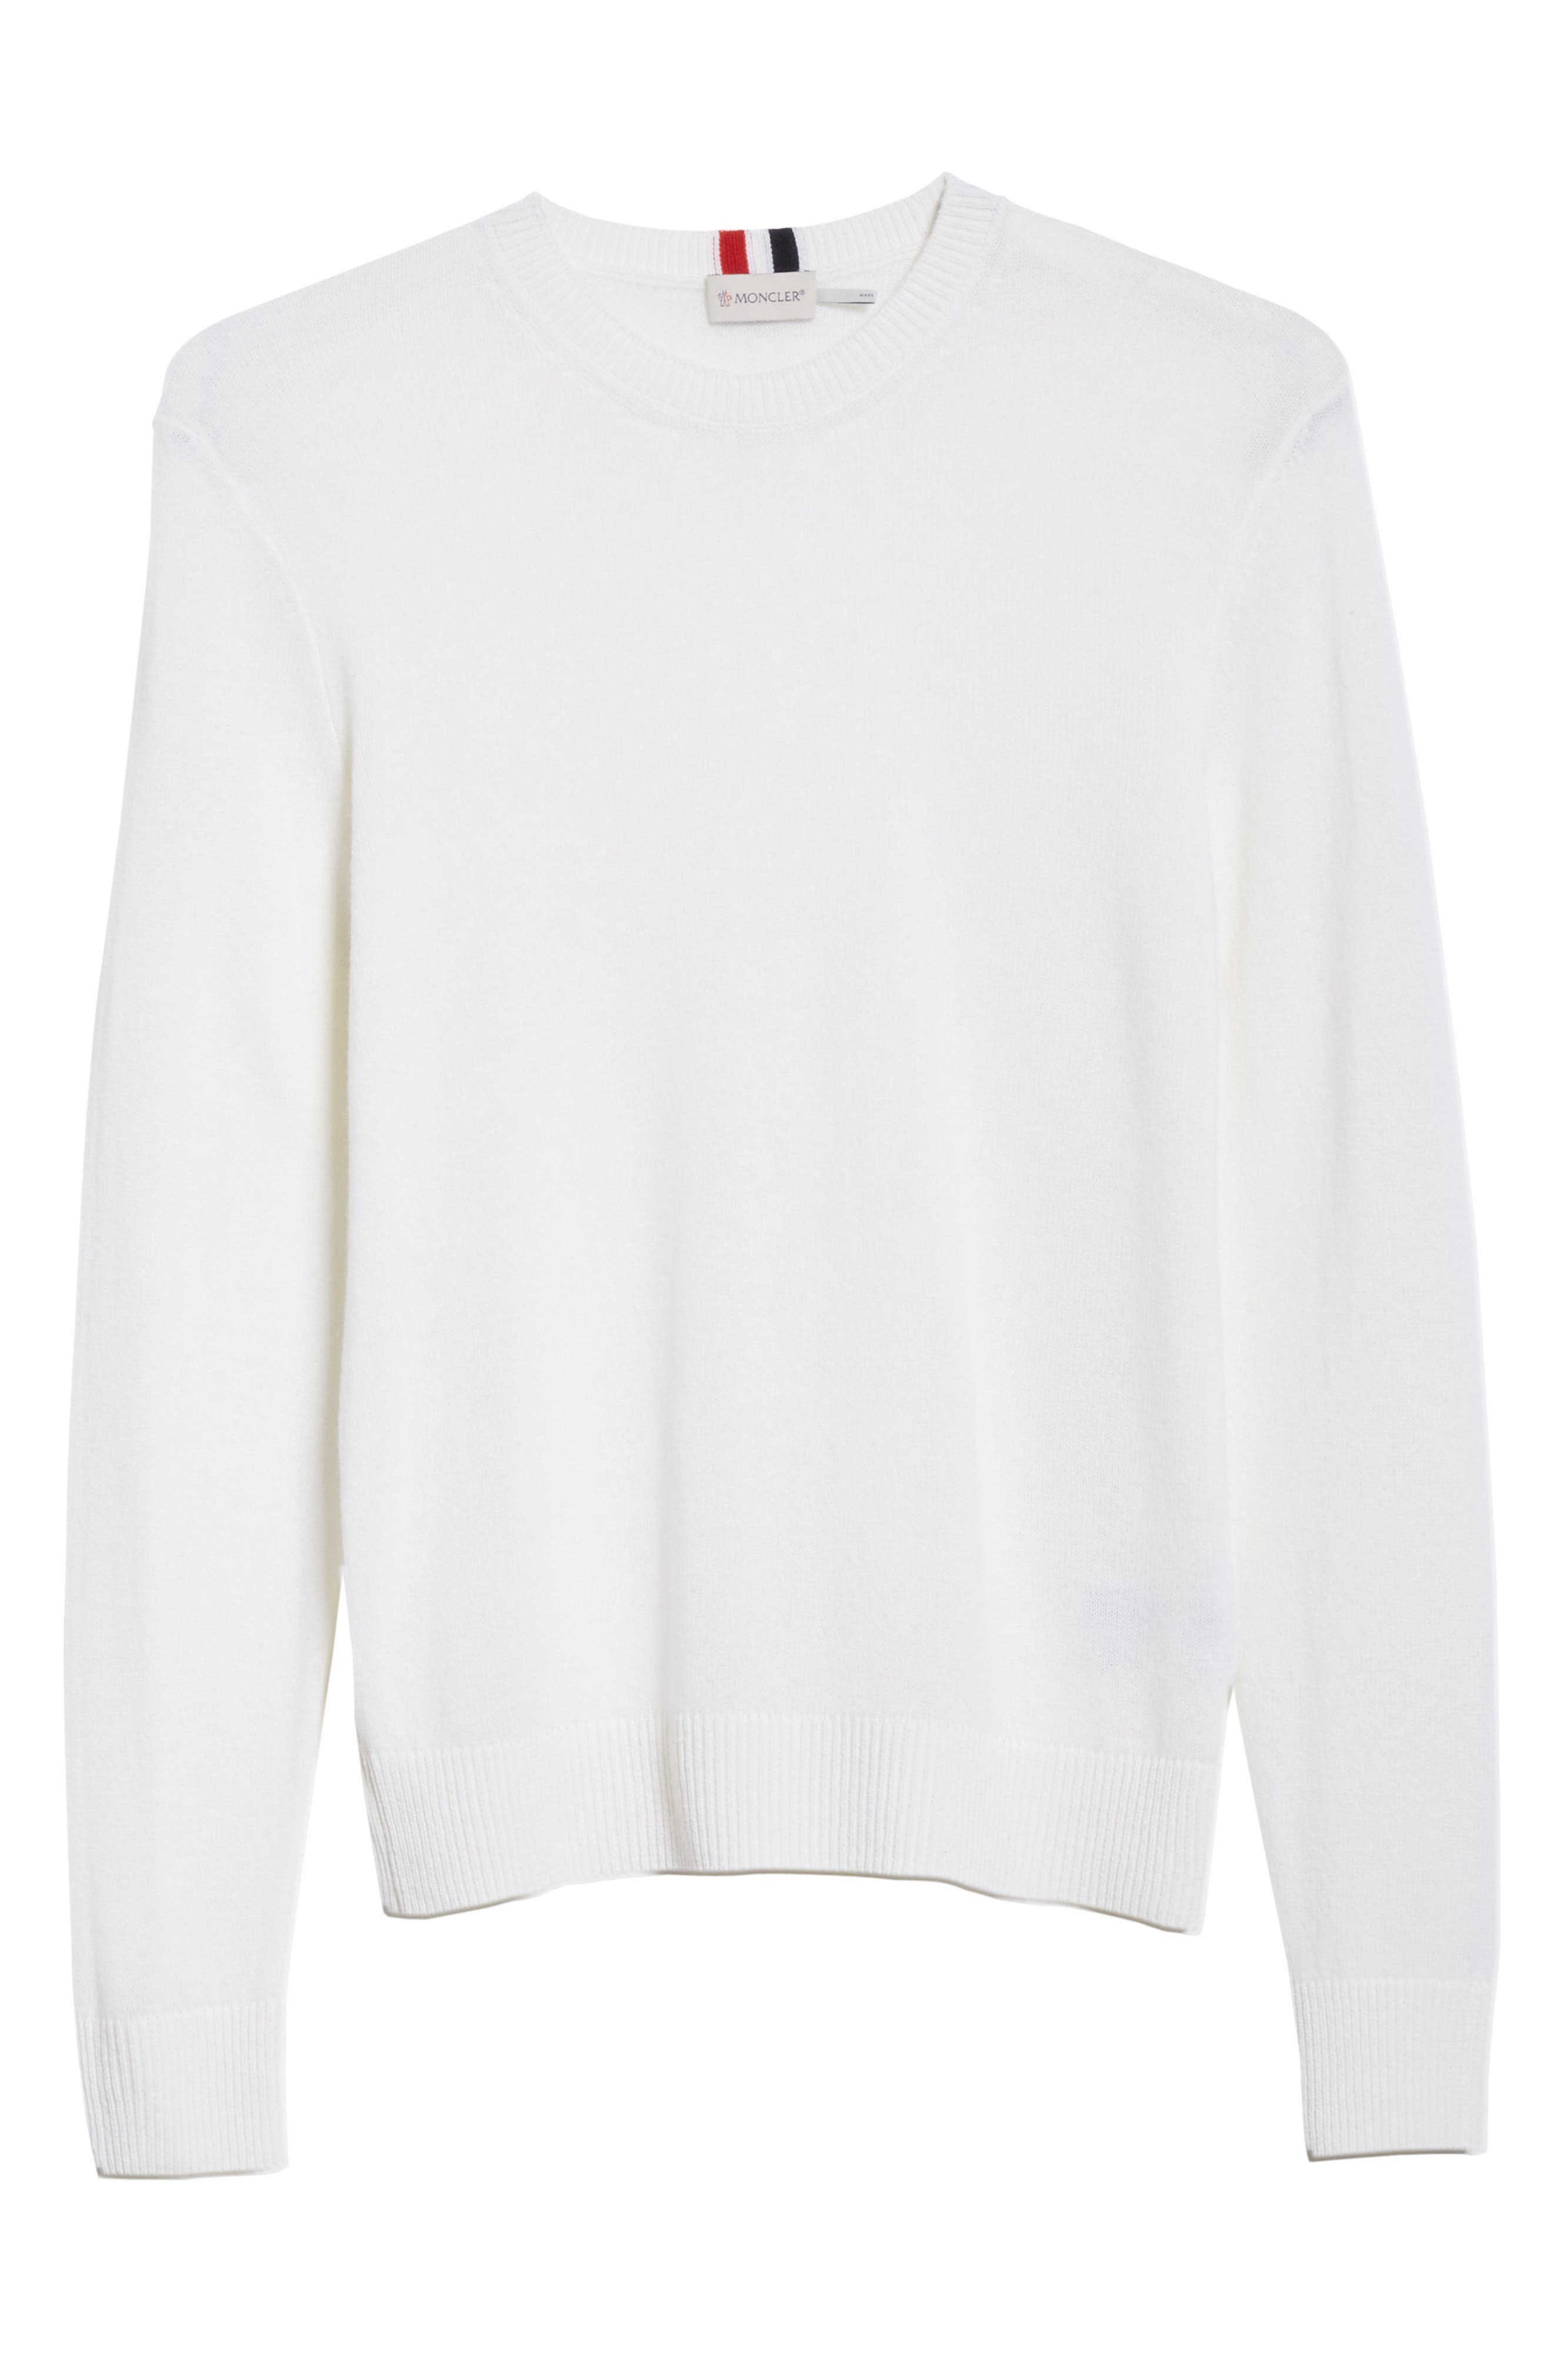 Cashmere Crewneck Sweater,                             Alternate thumbnail 6, color,                             100